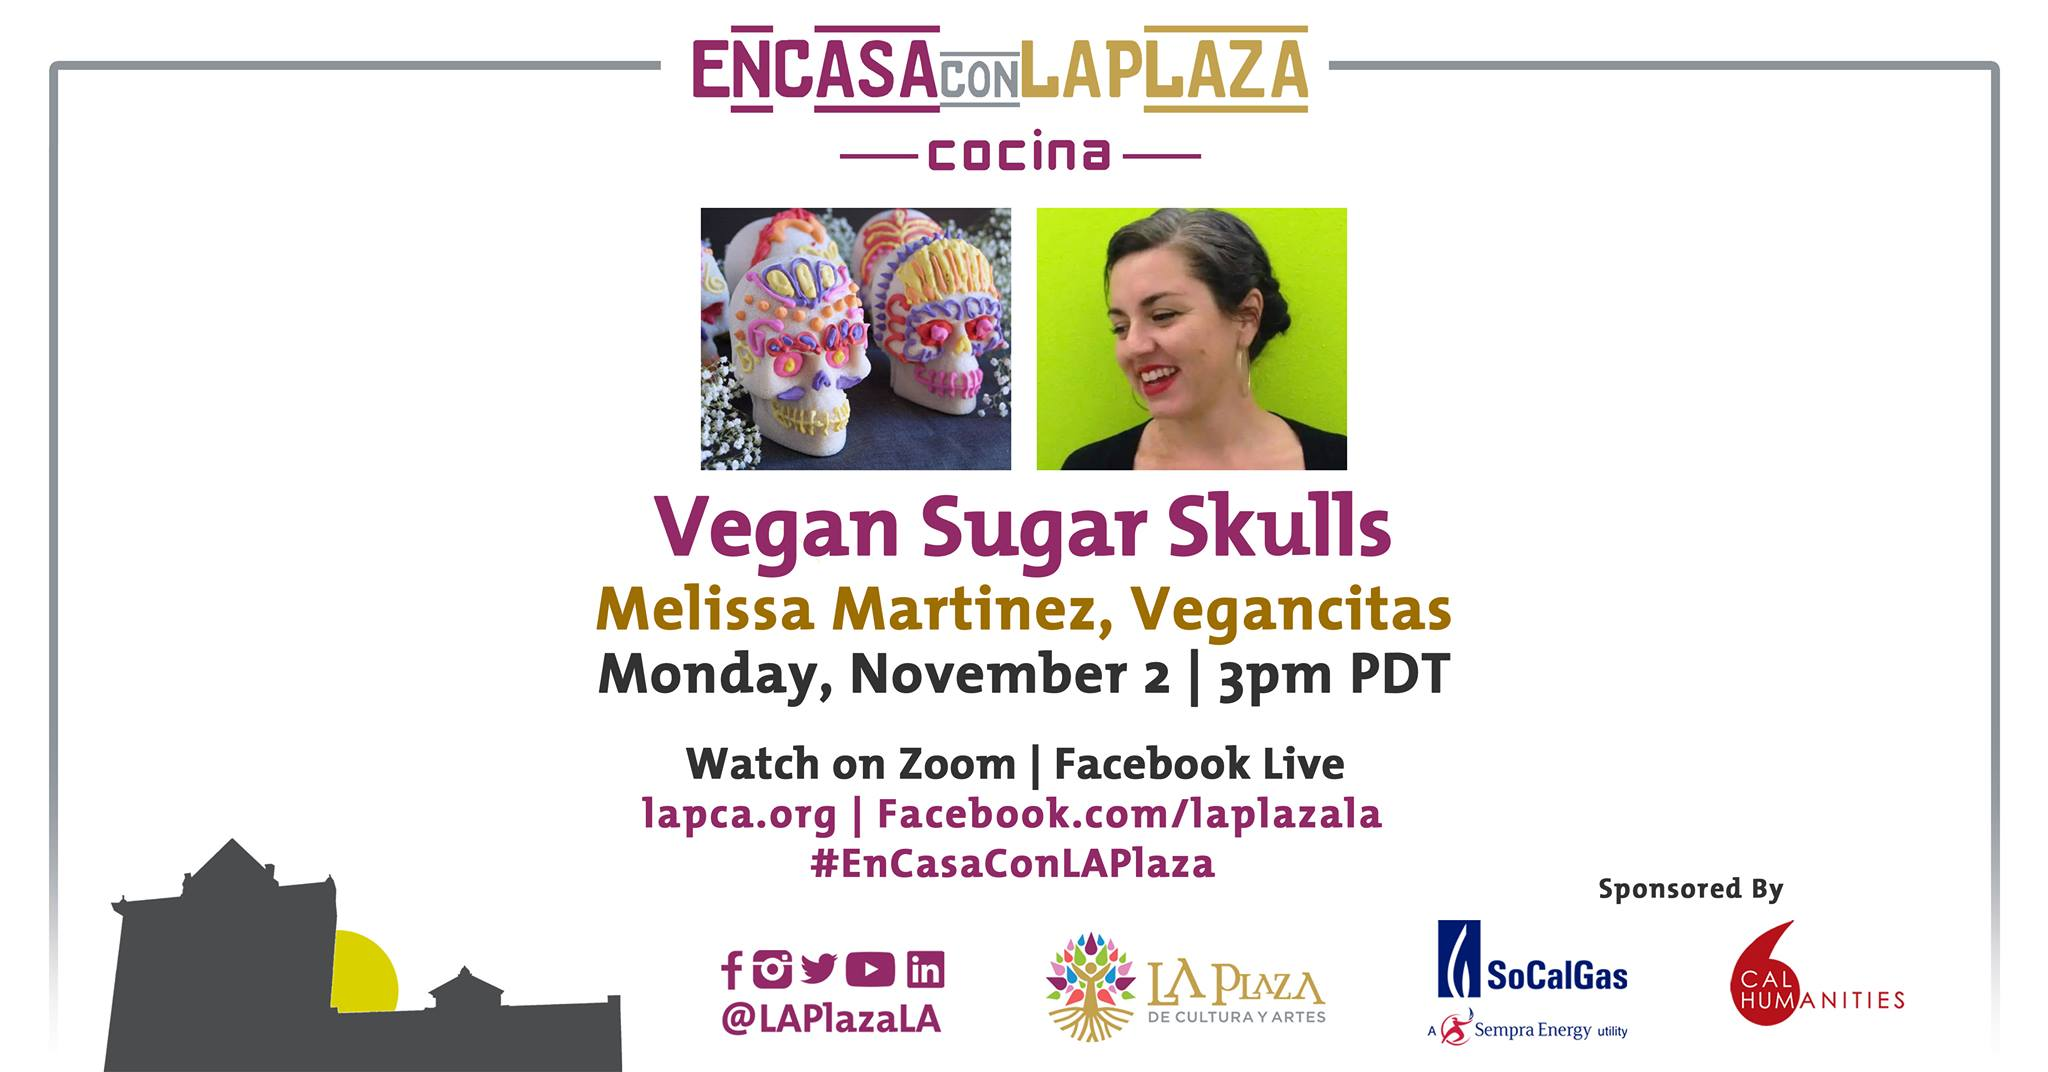 Learn to Make Vegan Sugar Skulls